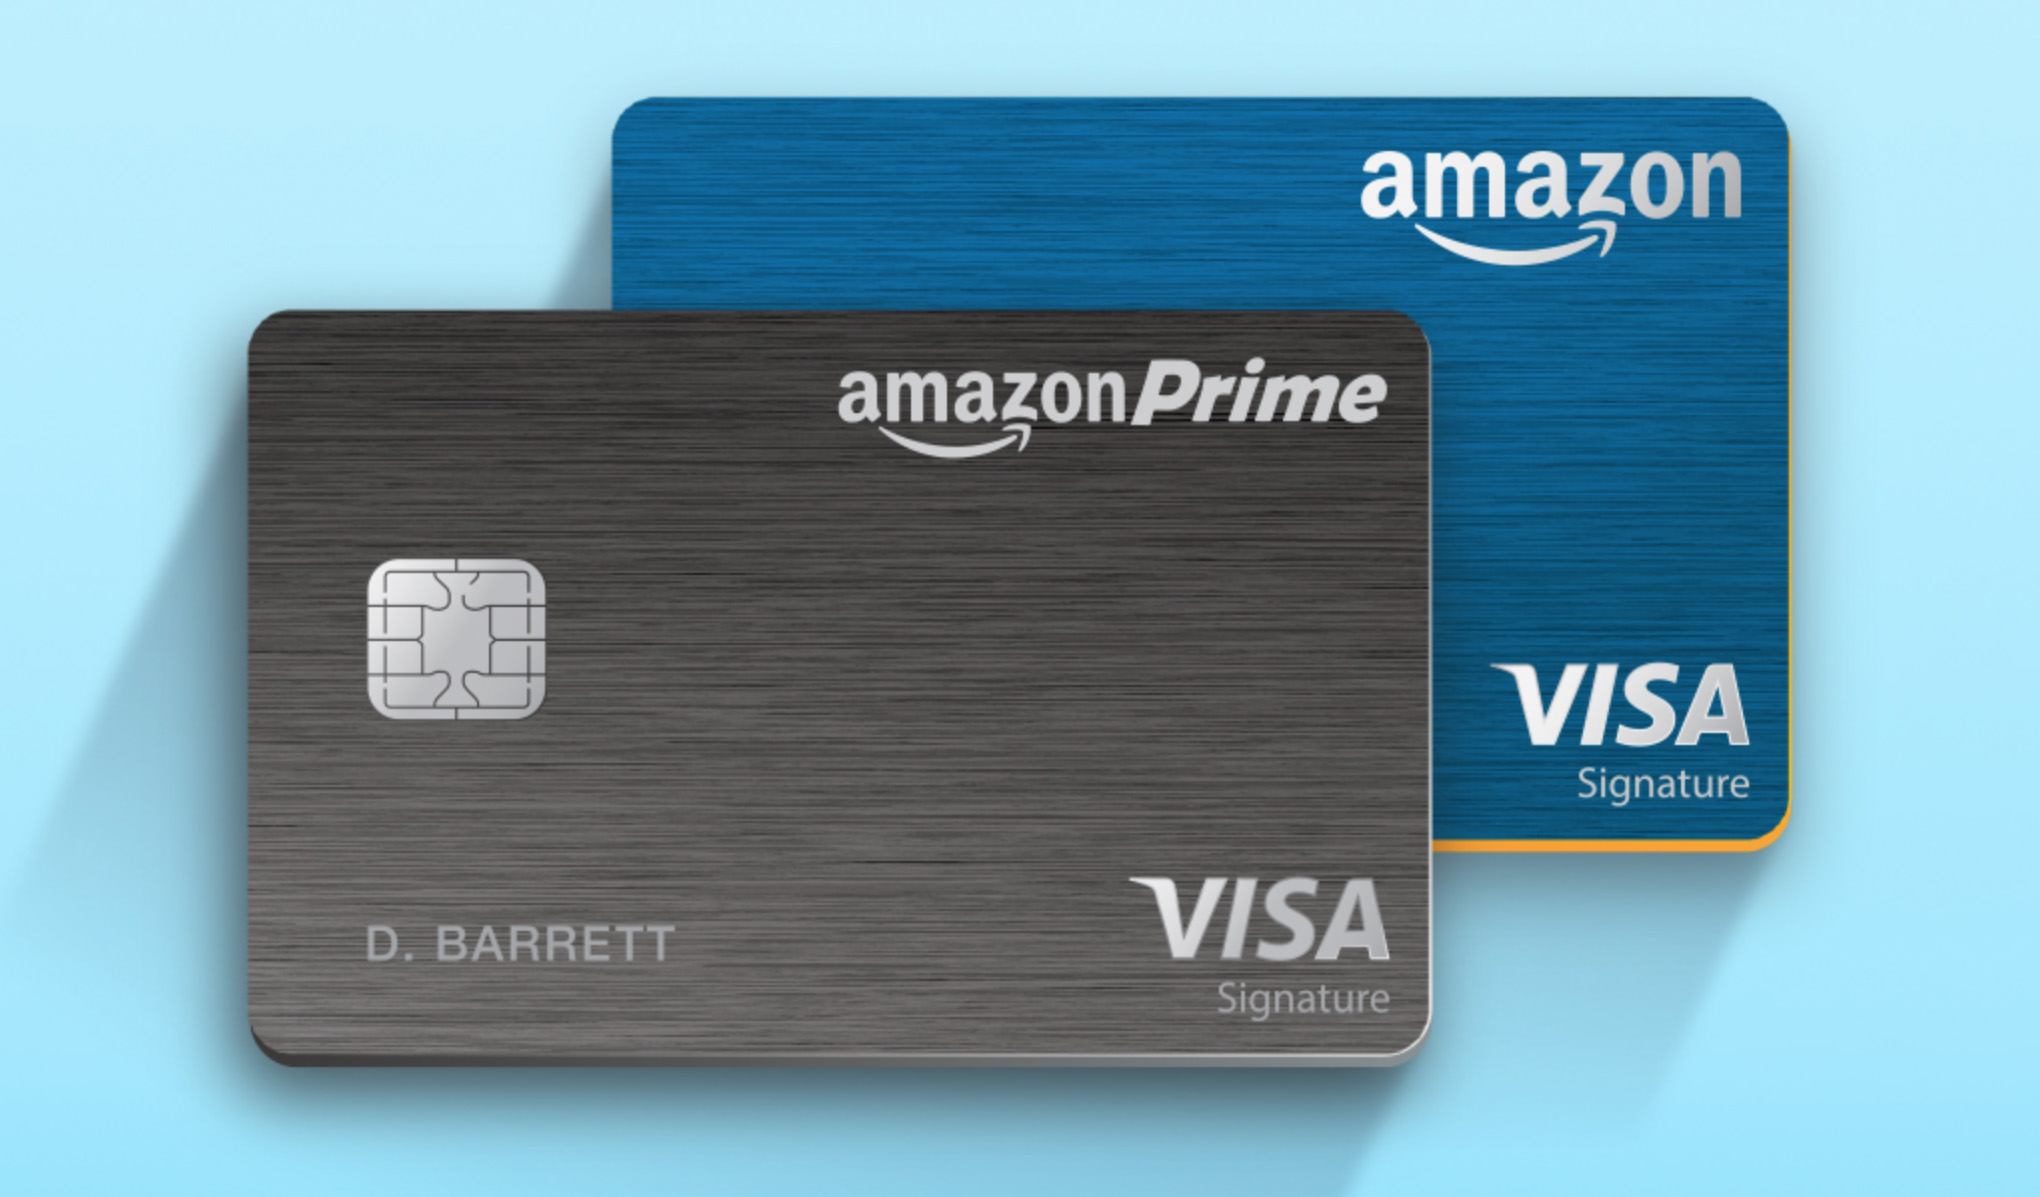 Amazon Prime Rewards cardholders can now get up to 20% back at Amazon through December